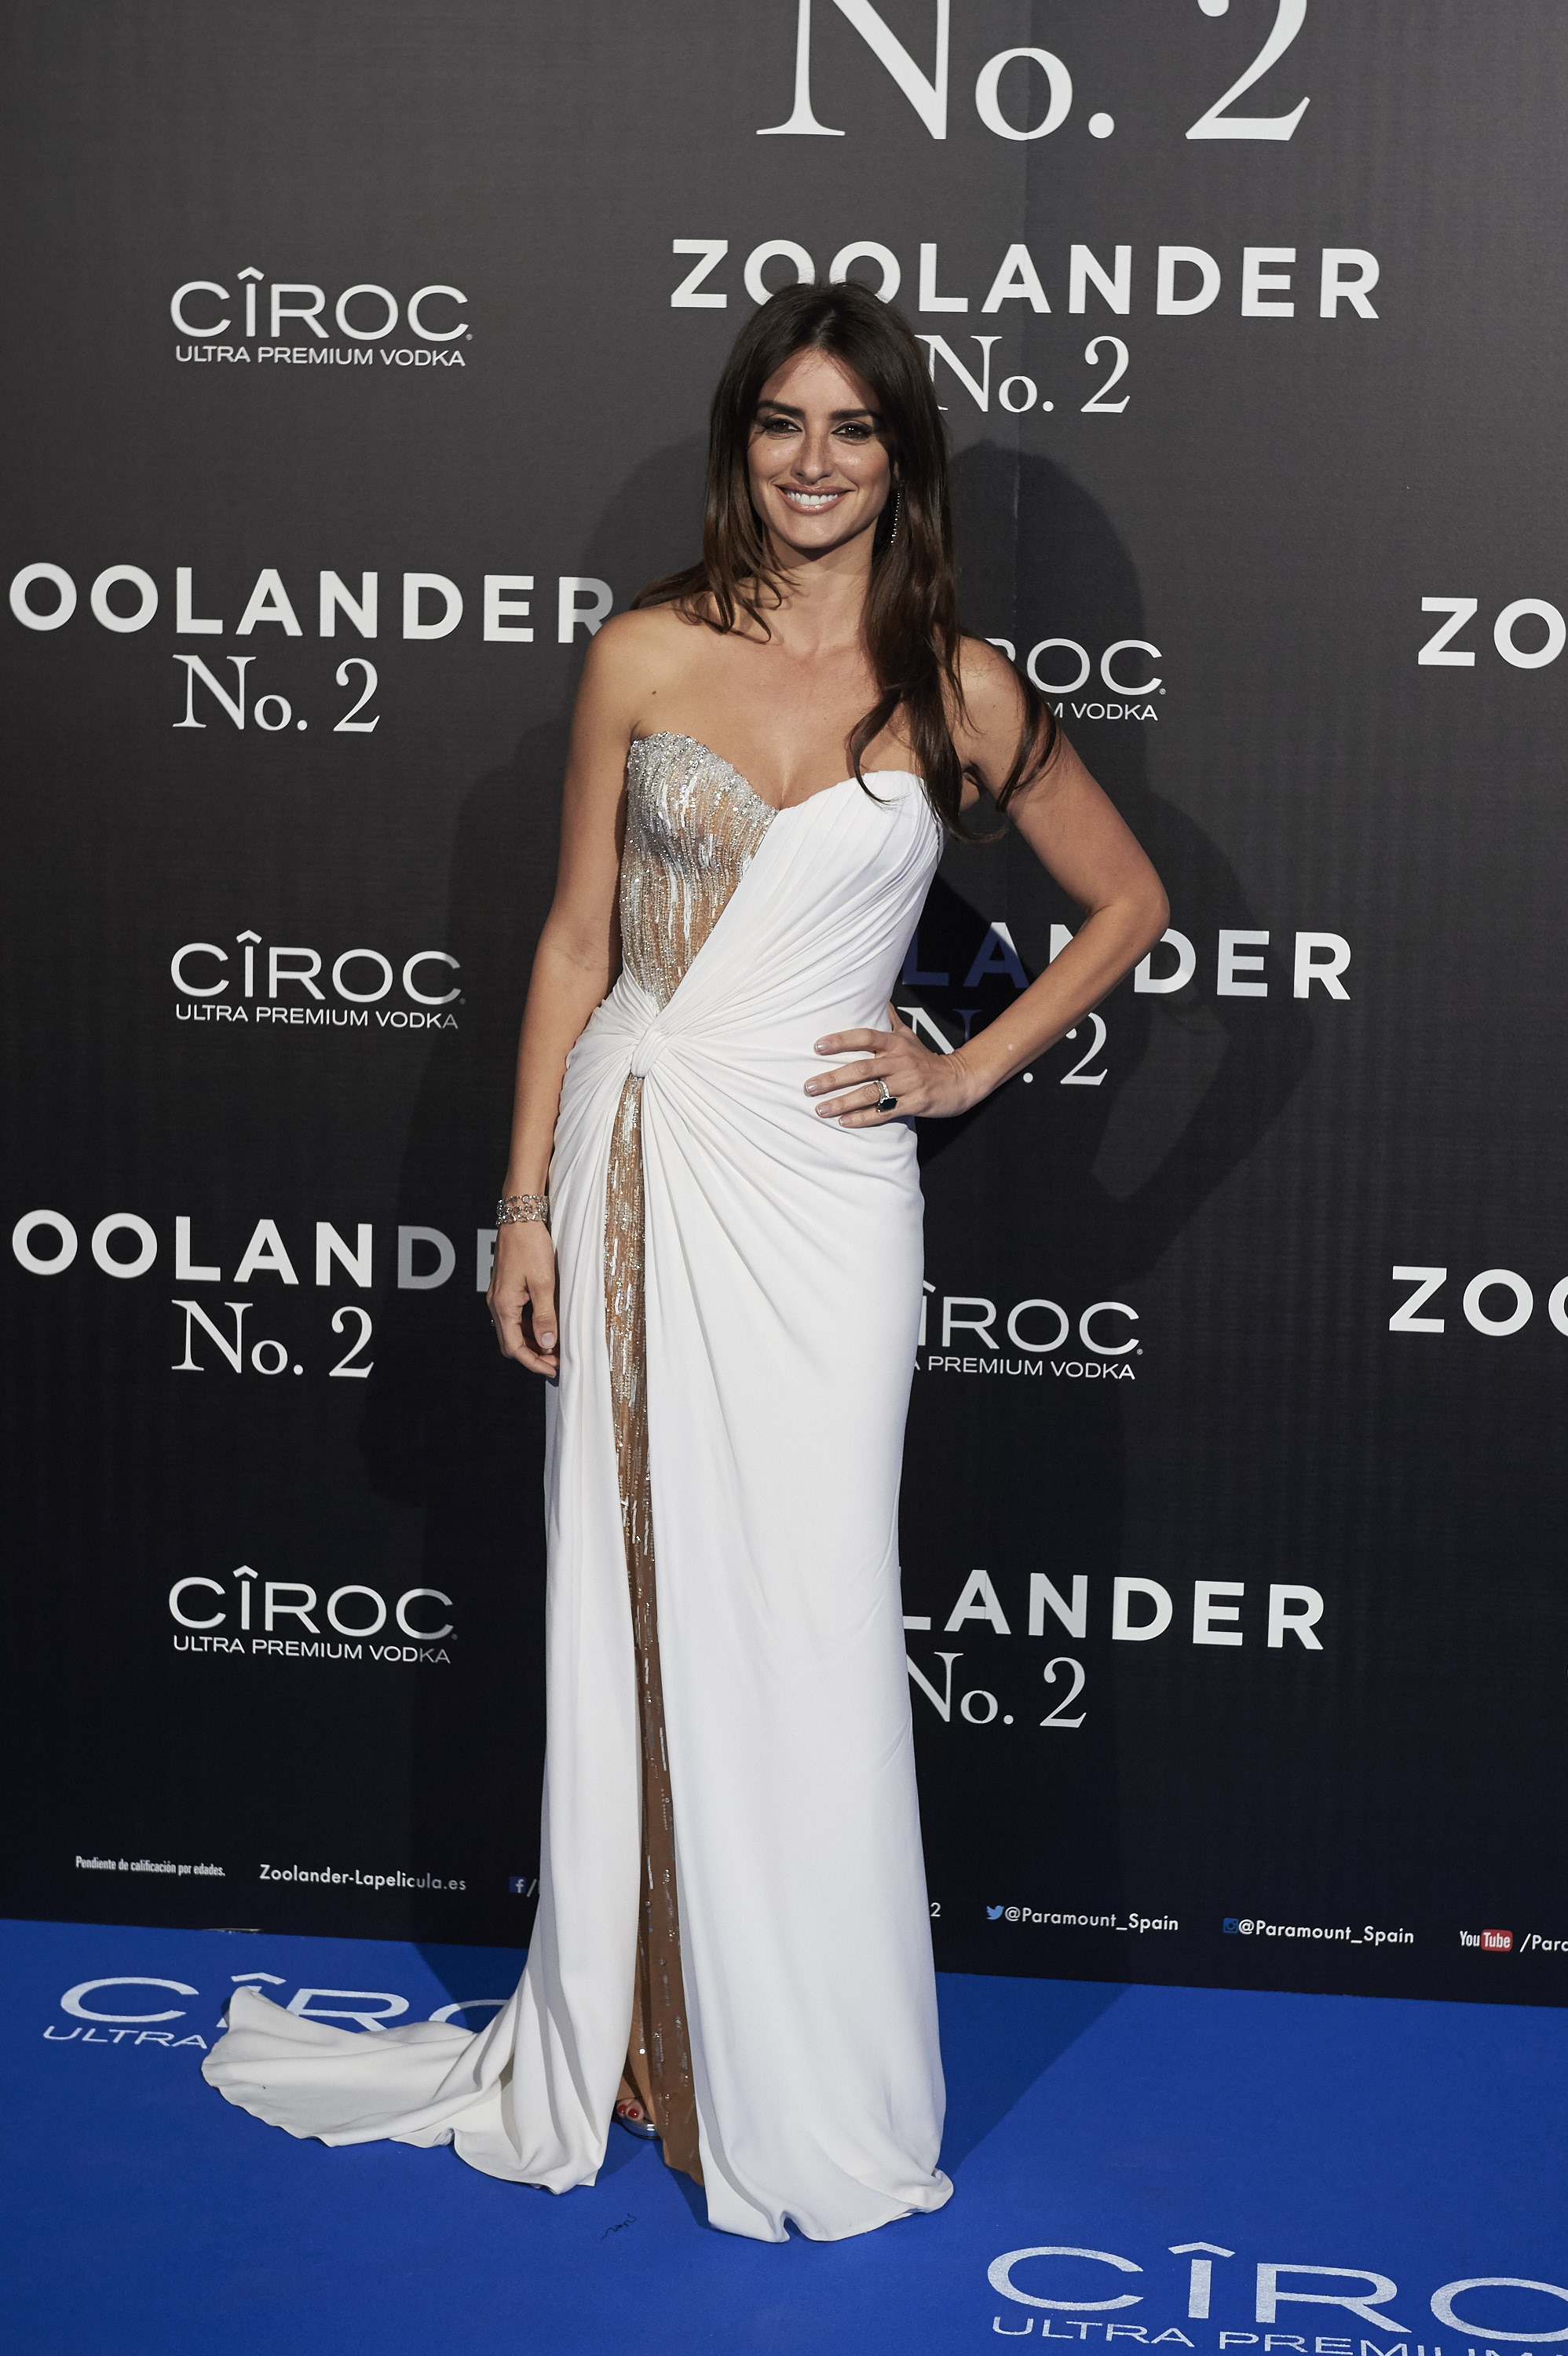 MADRID, SPAIN - FEBRUARY 01: Penelope Cruz attends the Madrid Fan Screening of the Paramount Pictures film 'Zoolander No. 2' at the Capitol Theater on February 1, 2016 in Madrid, Spain. (Photo by Carlos Alvarez/Getty Images)